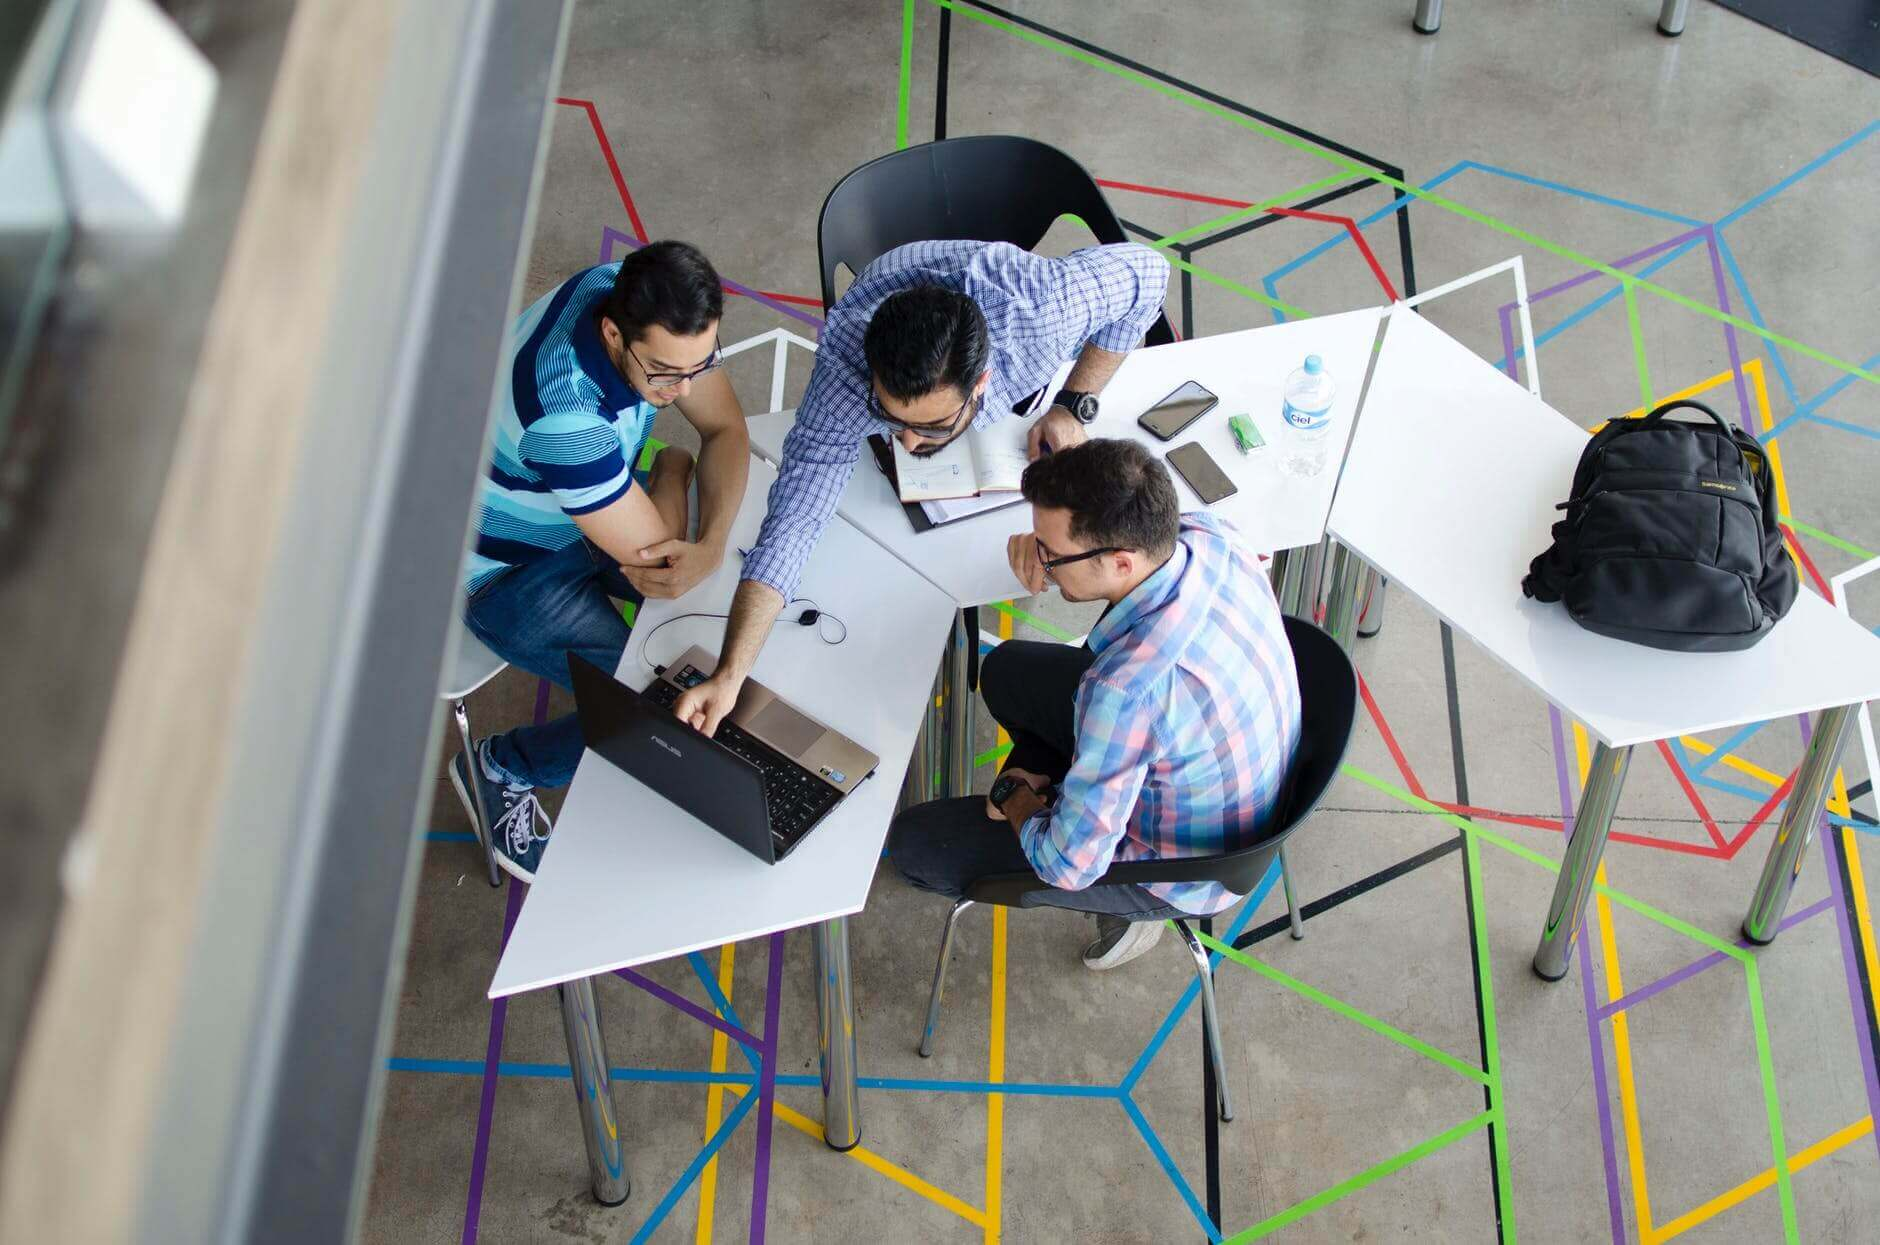 What can your Startup (or Enterprise) learn from Digital Transformation? Find out!